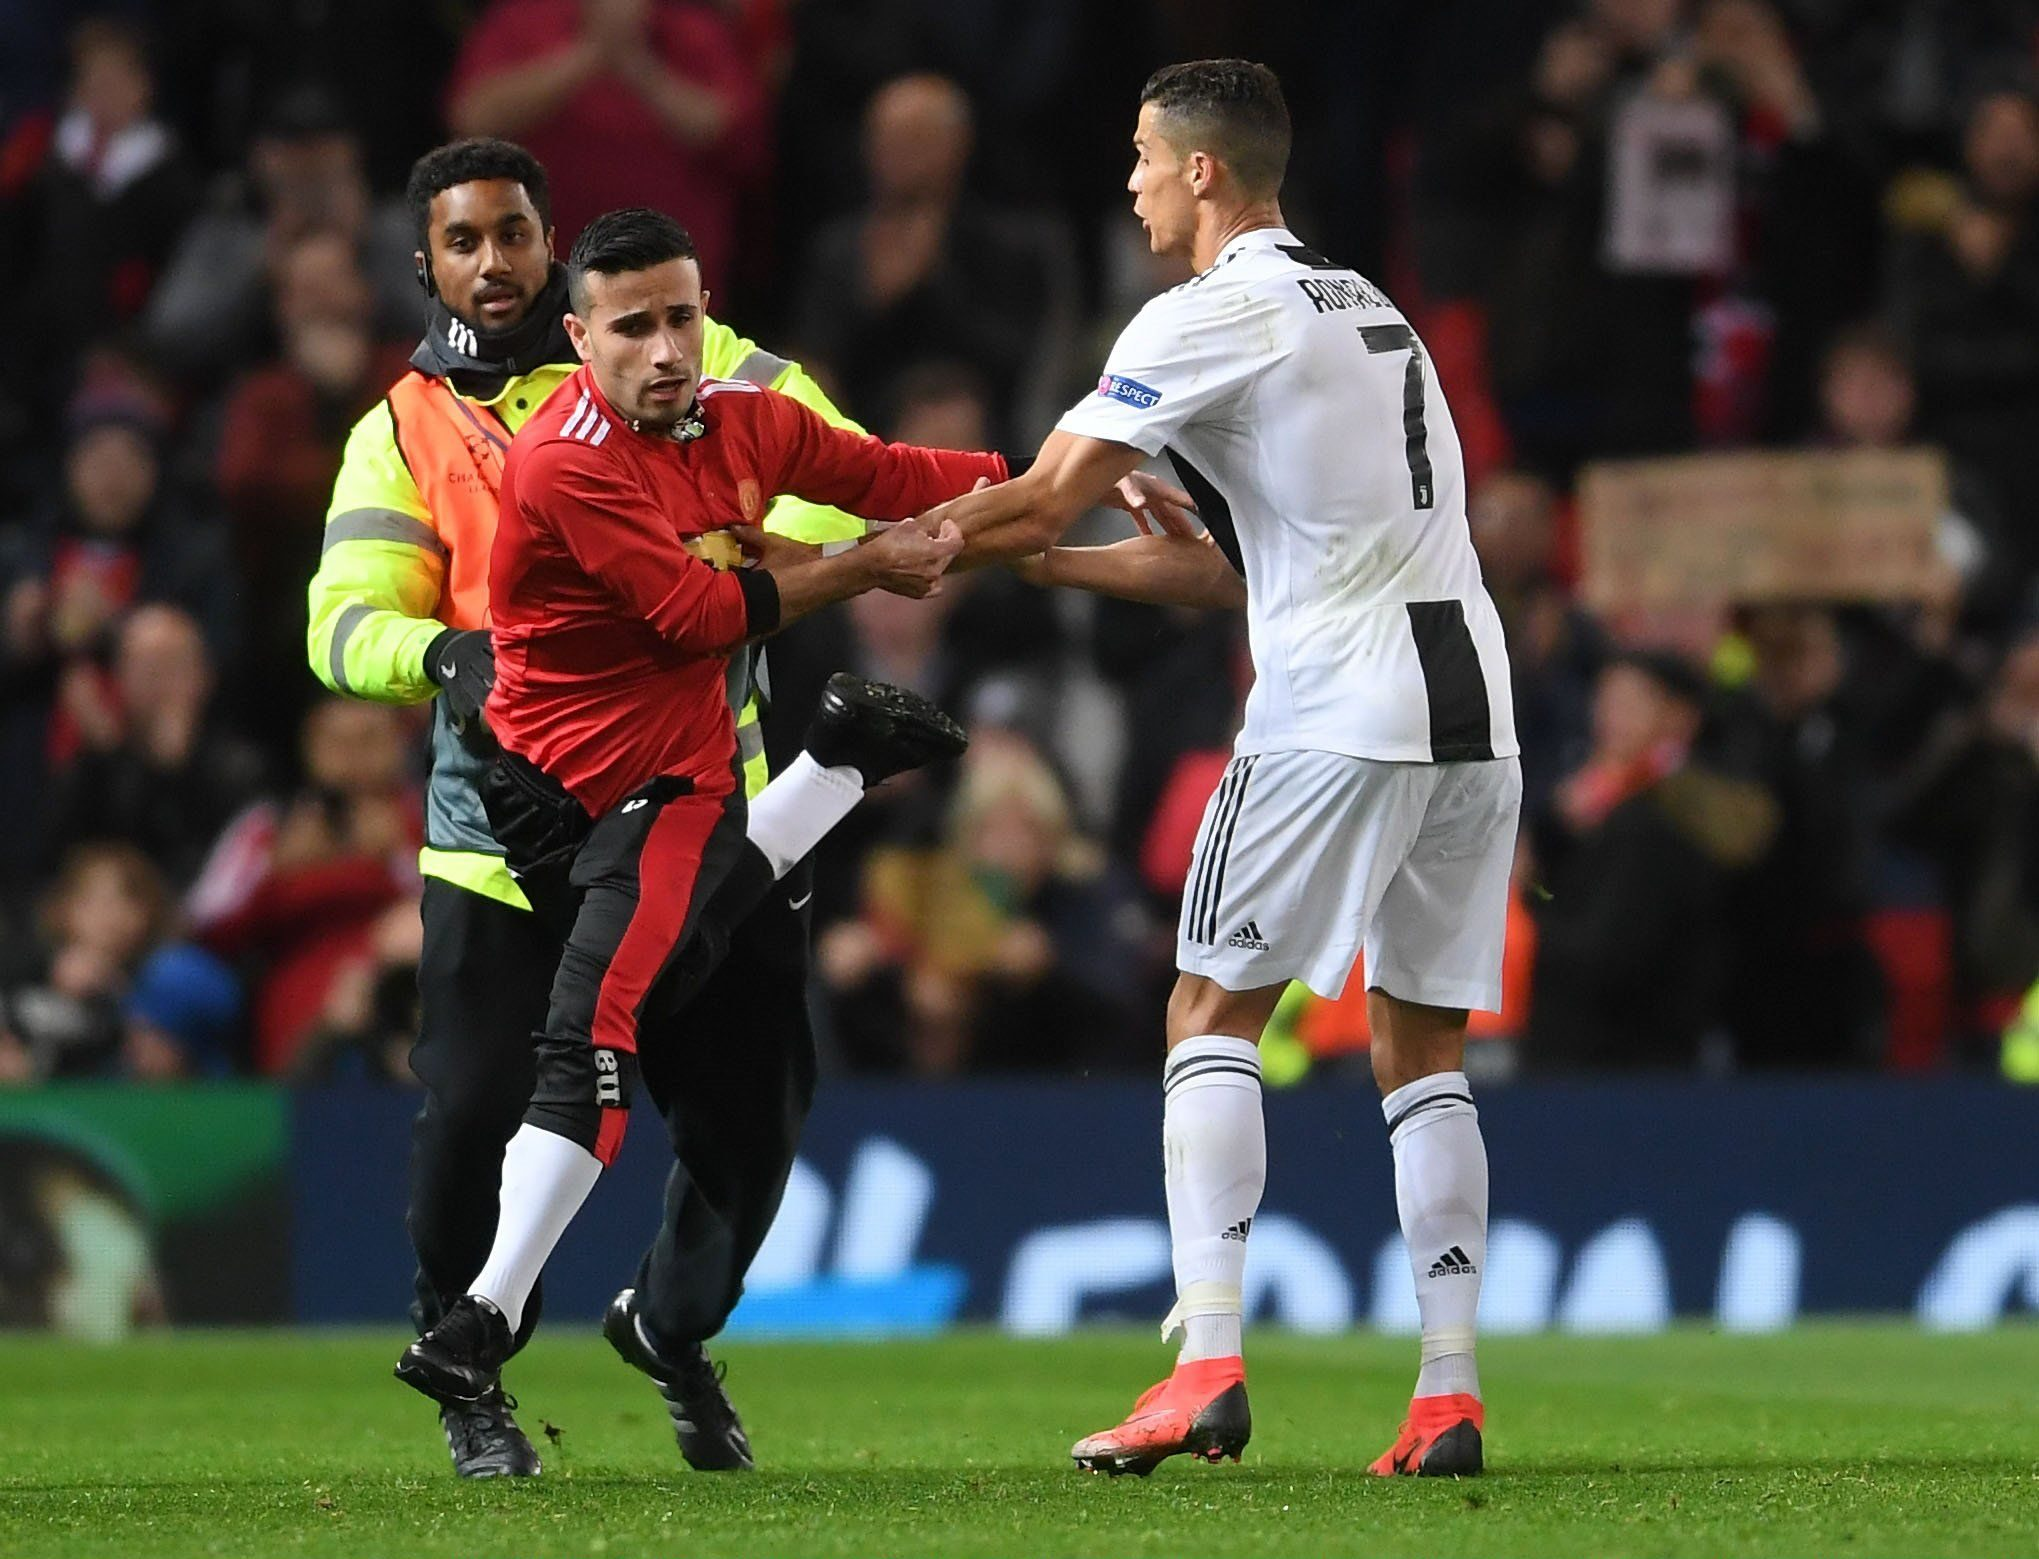 Cristiano Ronaldo takes selfie with pitch invader after Manchester United game